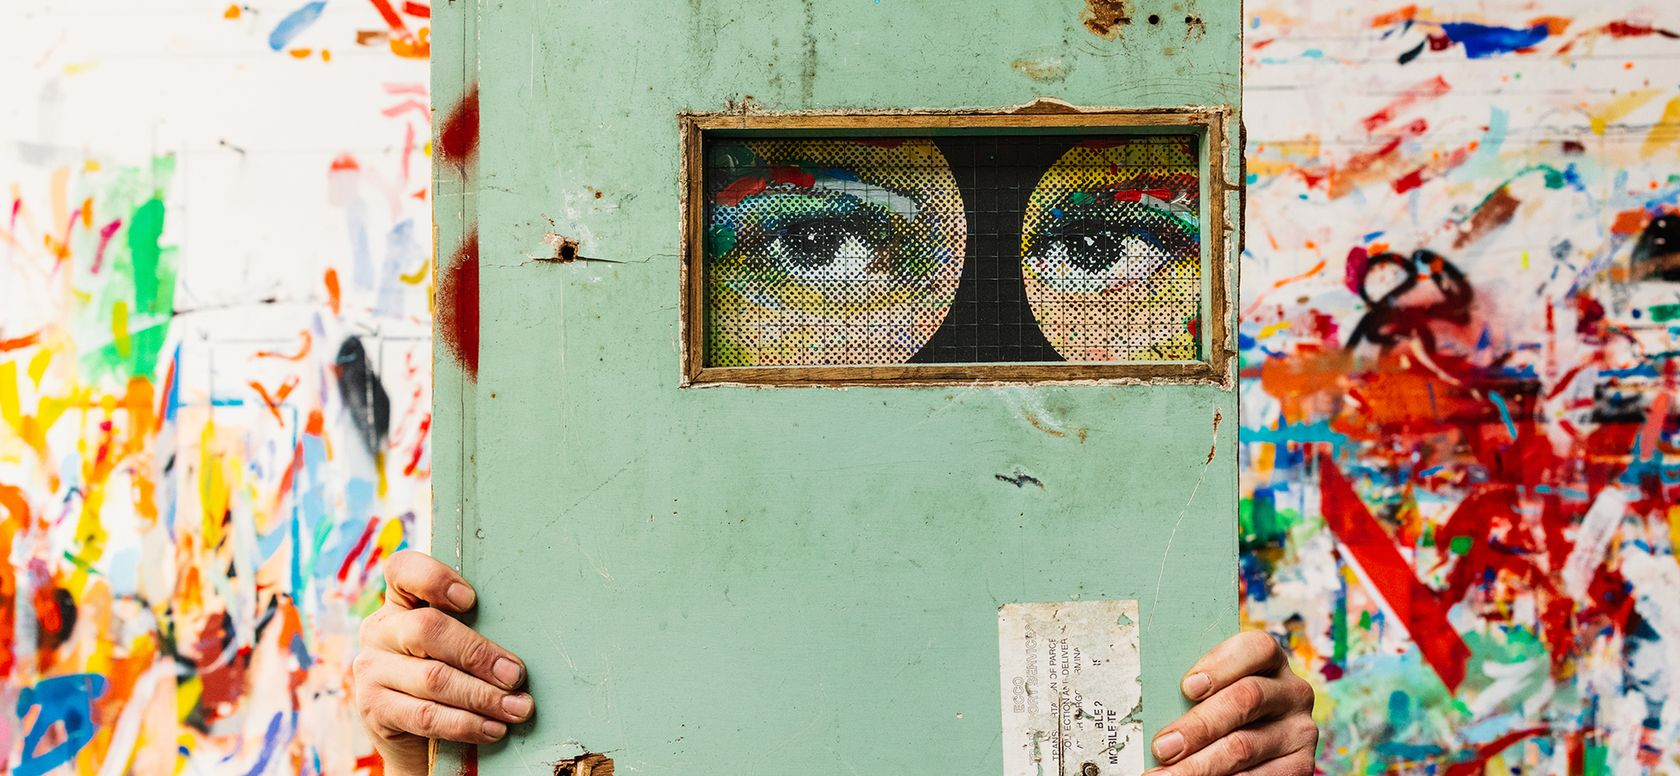 a hand emerges from either side of a pale green door, through a hole in which two painted eyes are visible.